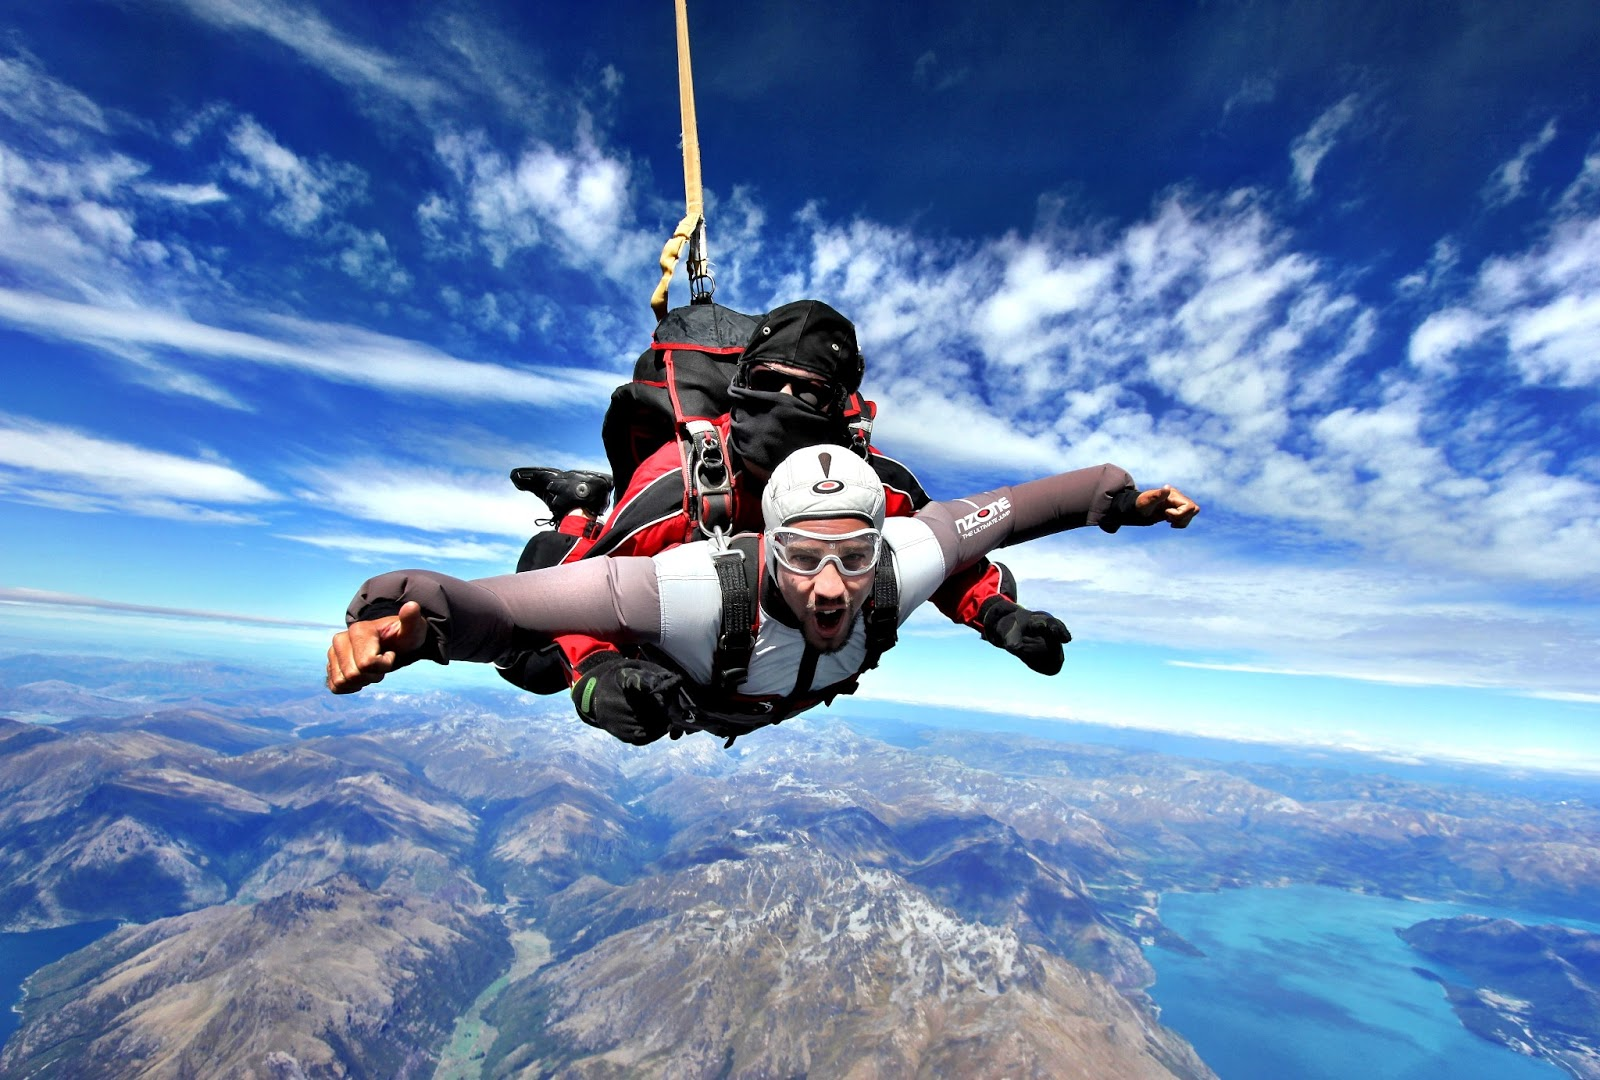 Simon Heyes skydiving in New Zealand